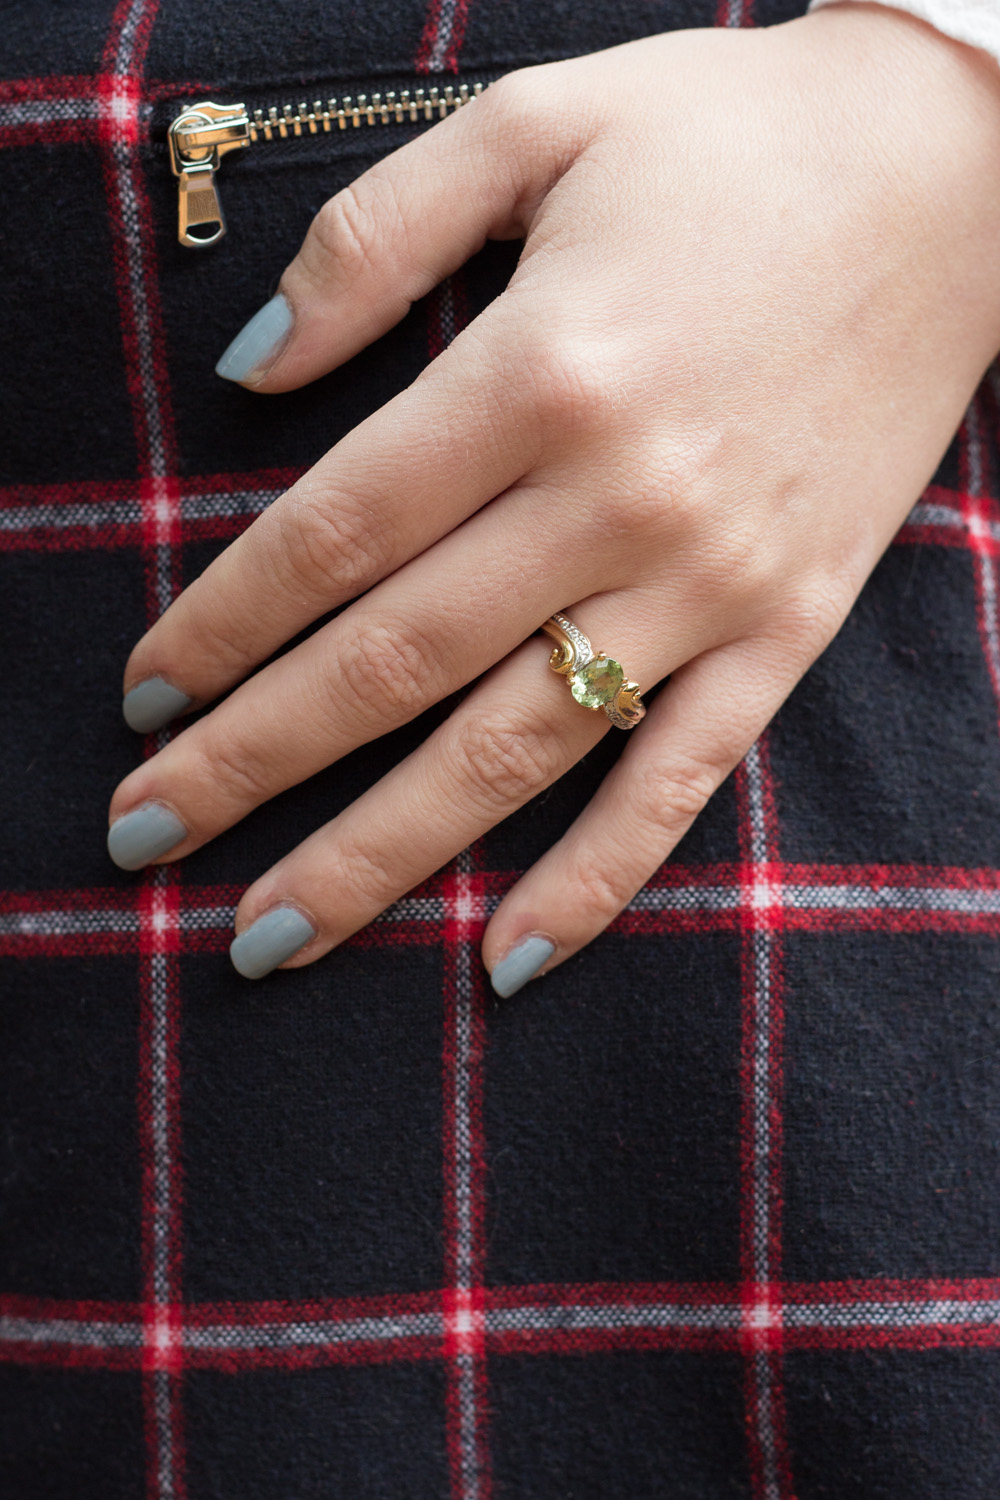 Gold and Green Garnet Engagement Ring, Sky Blue Nails, Plaid Skirt